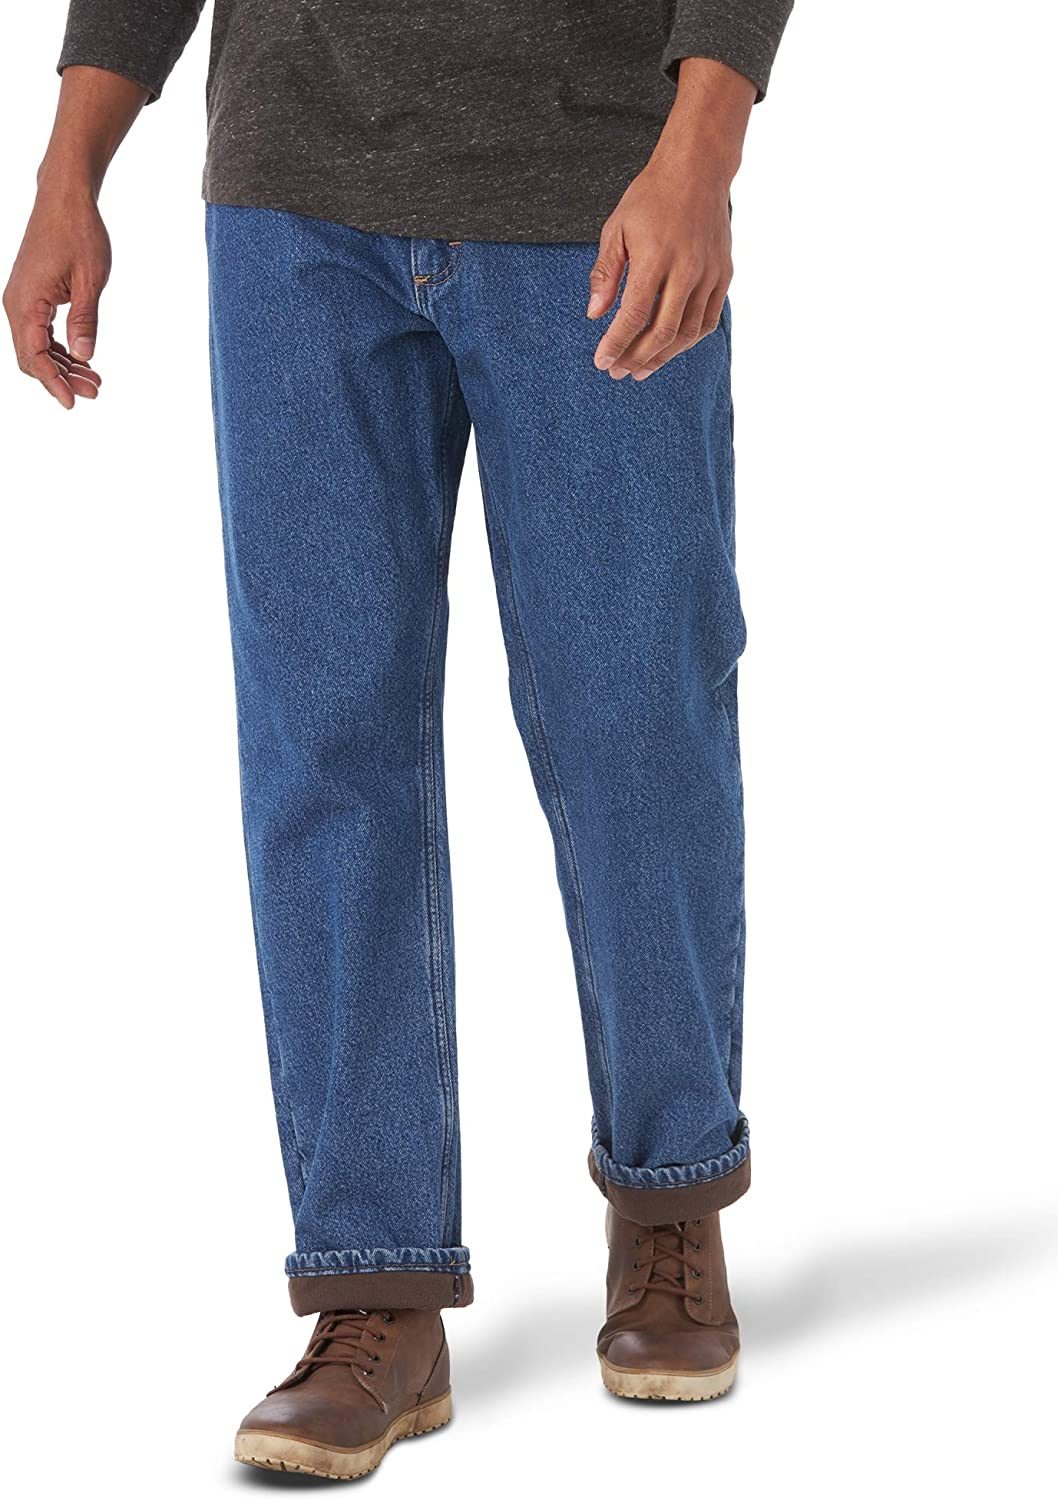 Wrangler Authentics Men's Fleece Pant Lined 5 Sales sale of SALE items from new works Pocket